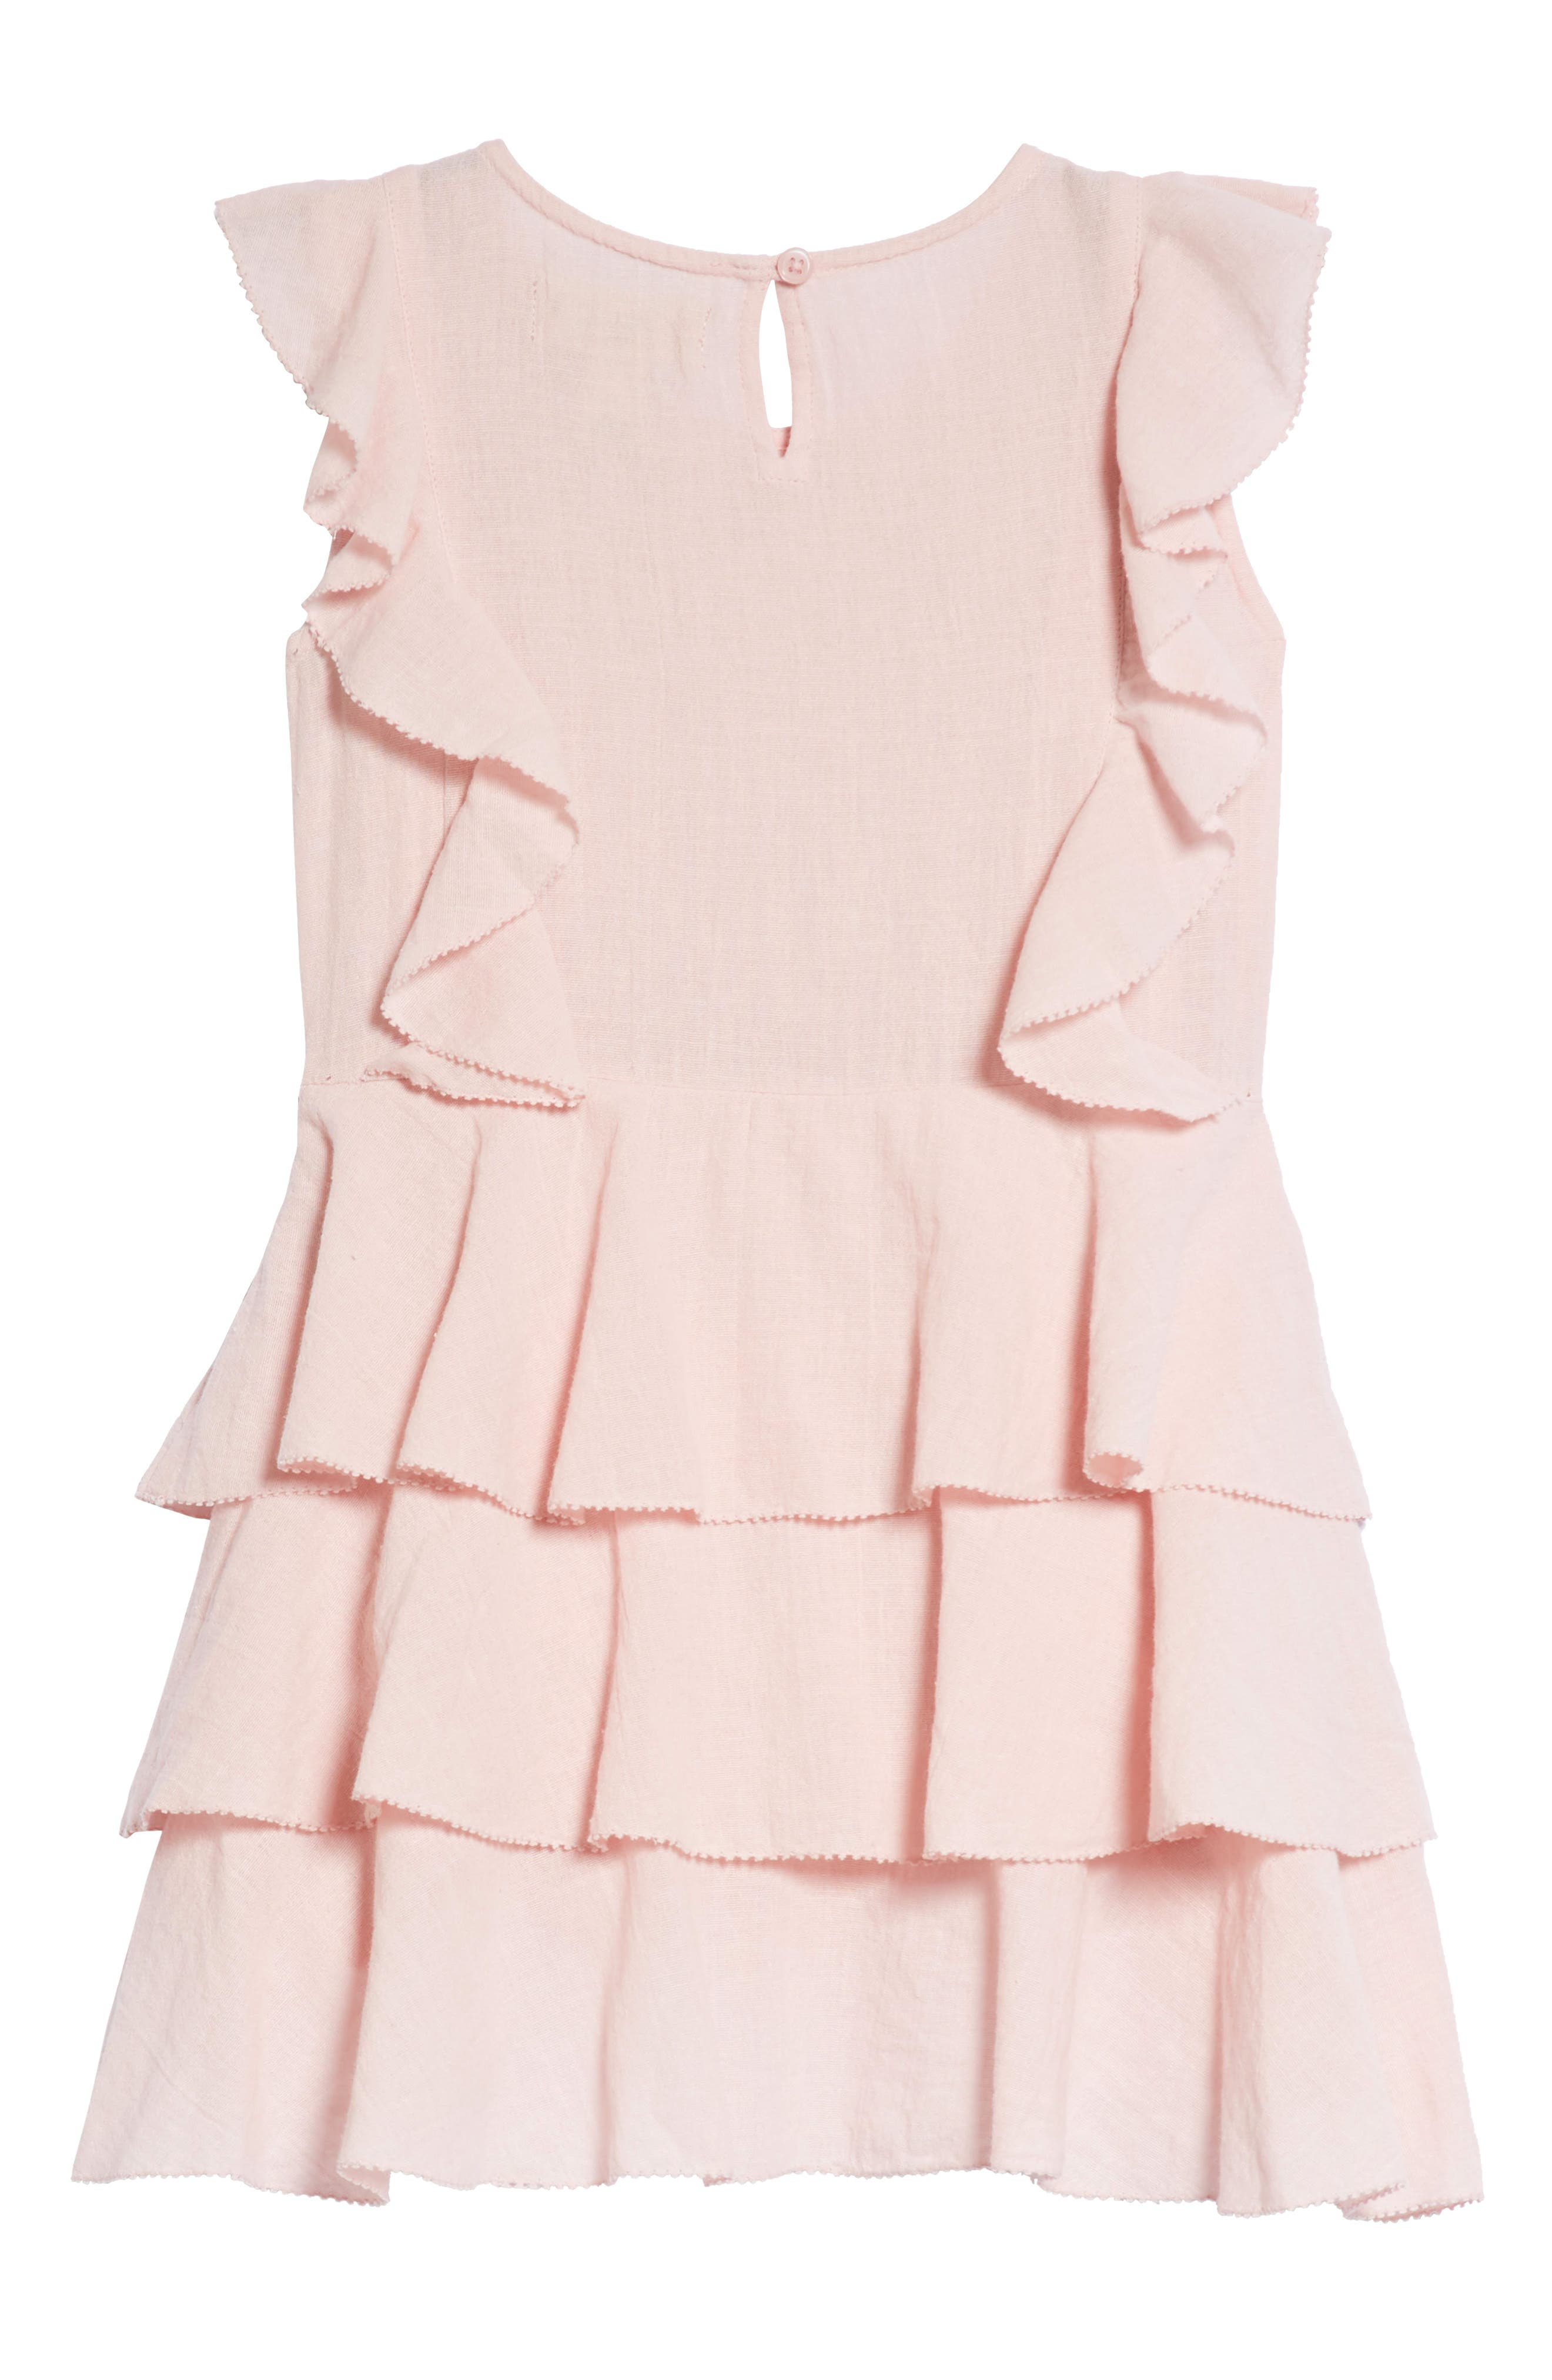 Madeline Tiered Dress,                             Alternate thumbnail 2, color,